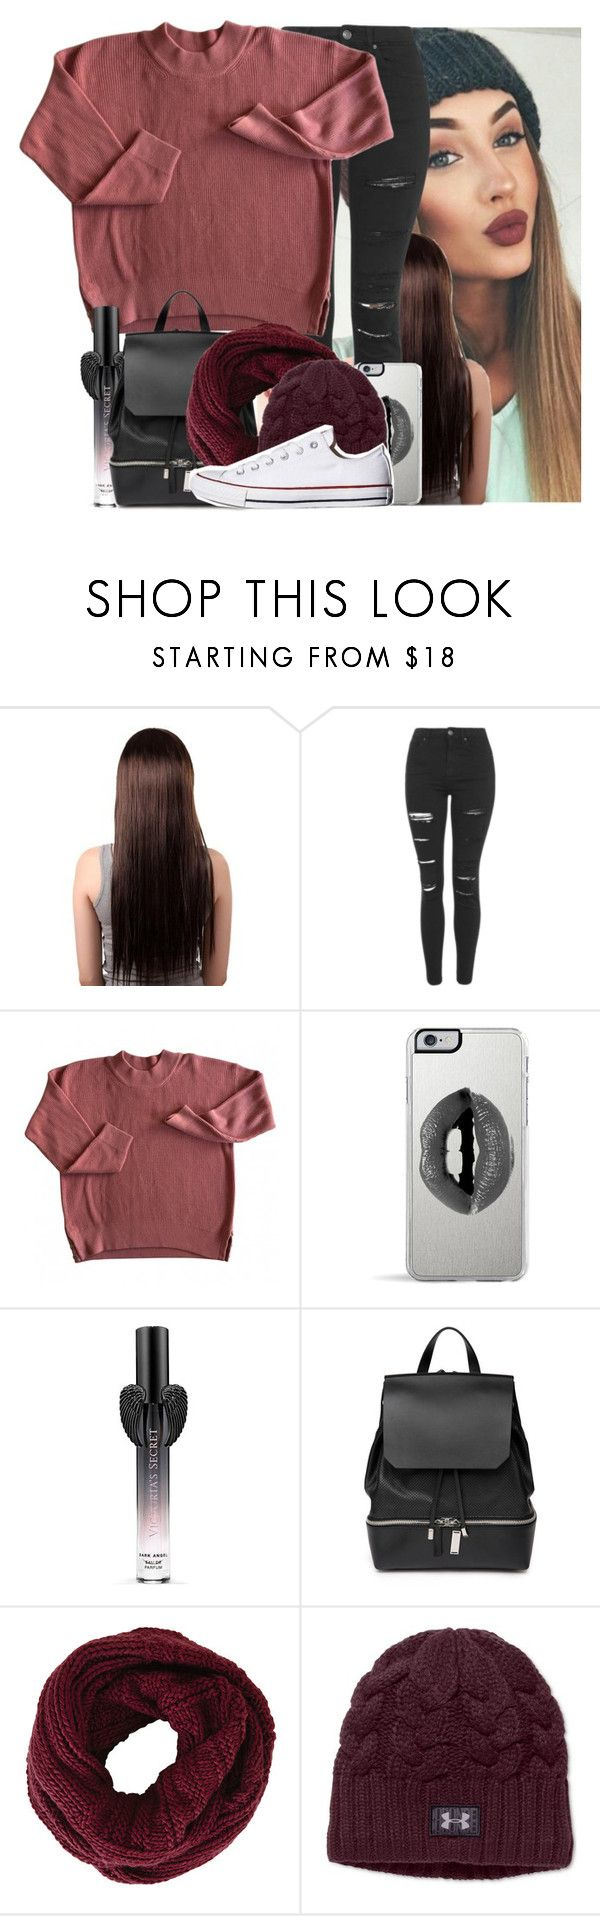 """""""Nobody sees, nobody knows, we are a secret, can't be exposed"""" by yazbo ❤ liked on Polyvore featuring Topshop, Lipsy, Victoria's Secret, COSTUME NATIONAL, BCBGMAXAZRIA, Under Armour, Converse, women's clothing, women's fashion and women"""